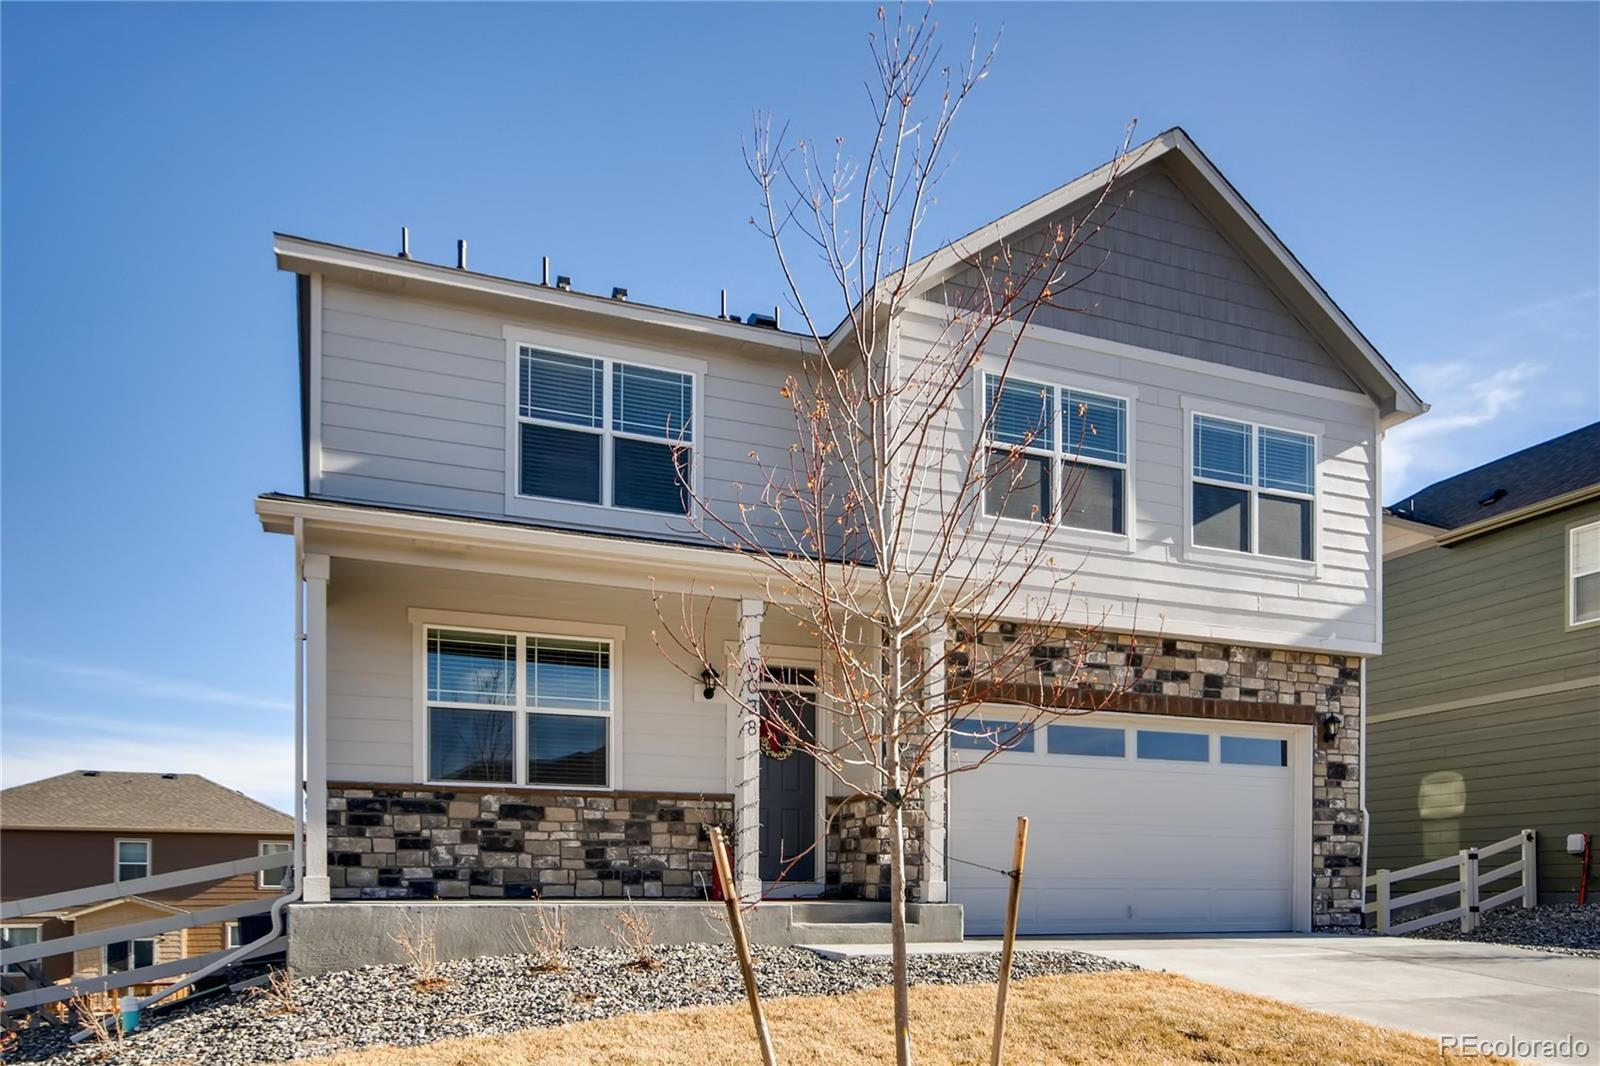 MLS# 8231798 - 1 - 6038 High Timber Circle, Castle Rock, CO 80104